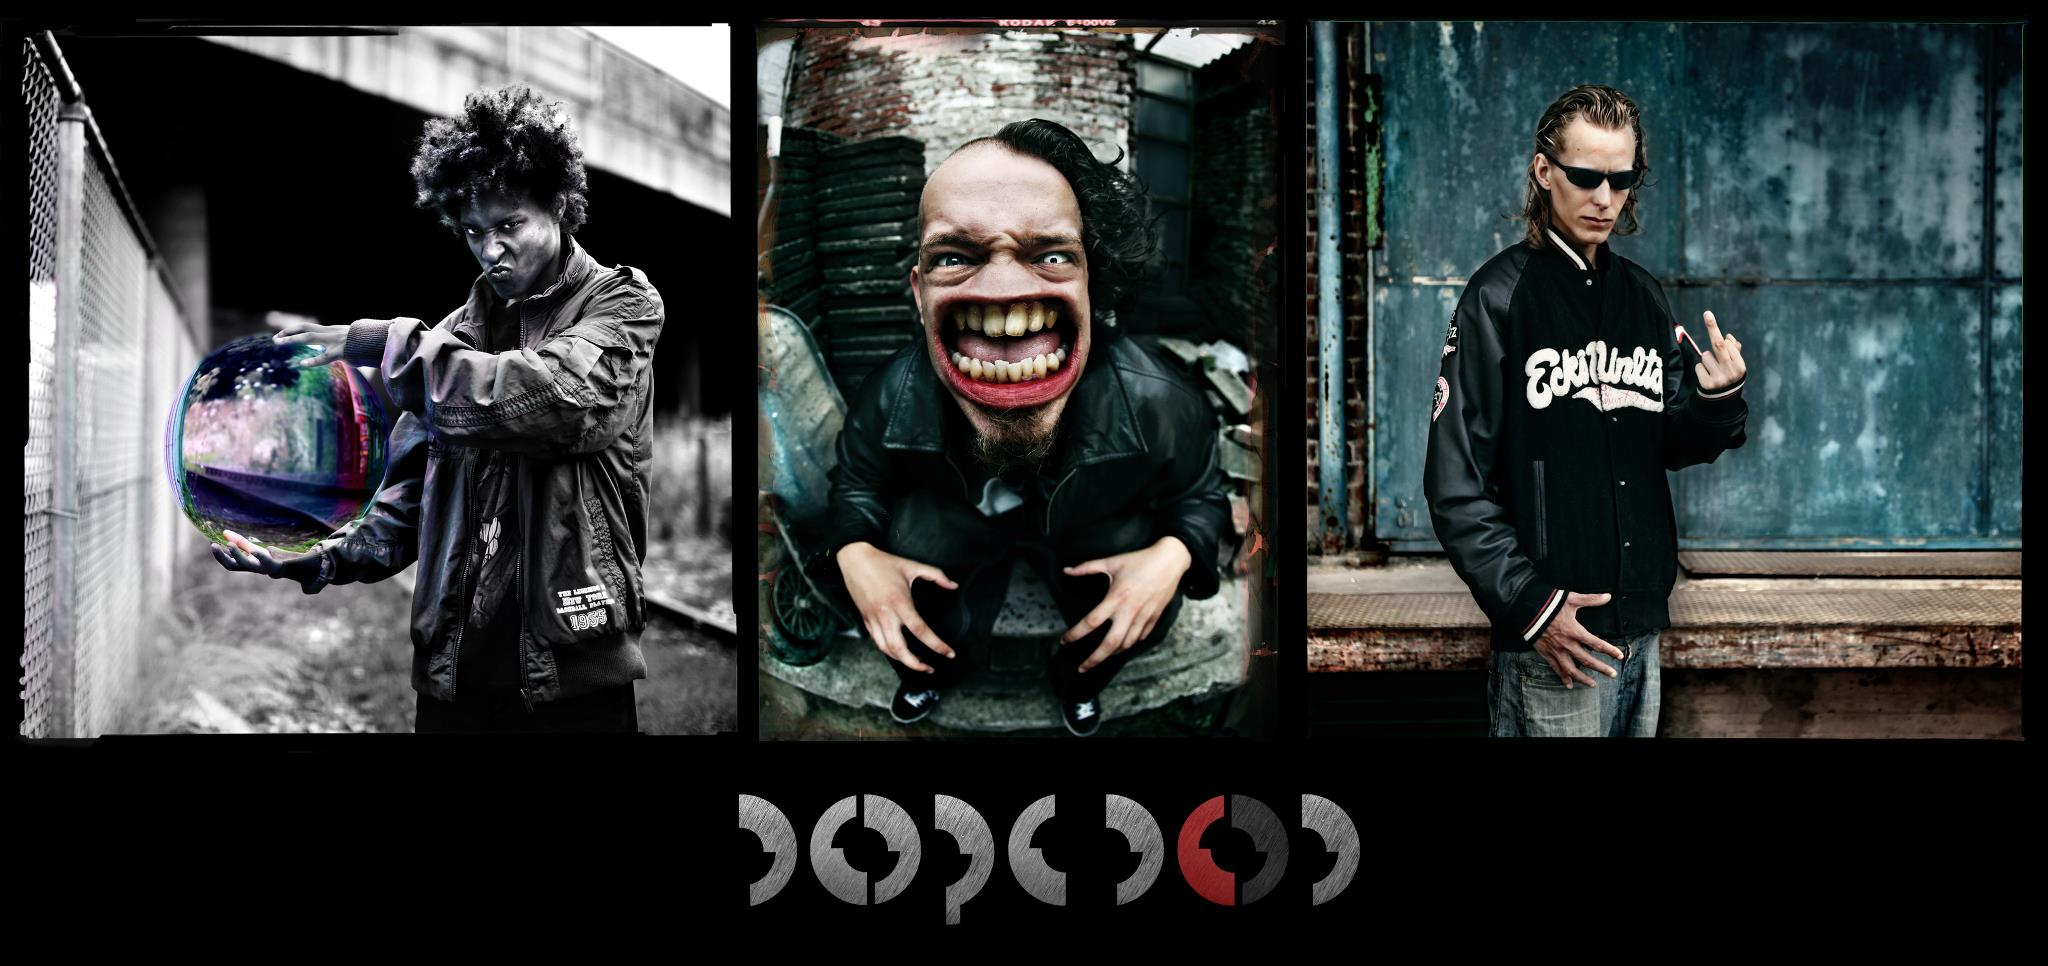 Dope Dod Branded Dope Dod Consists of Three